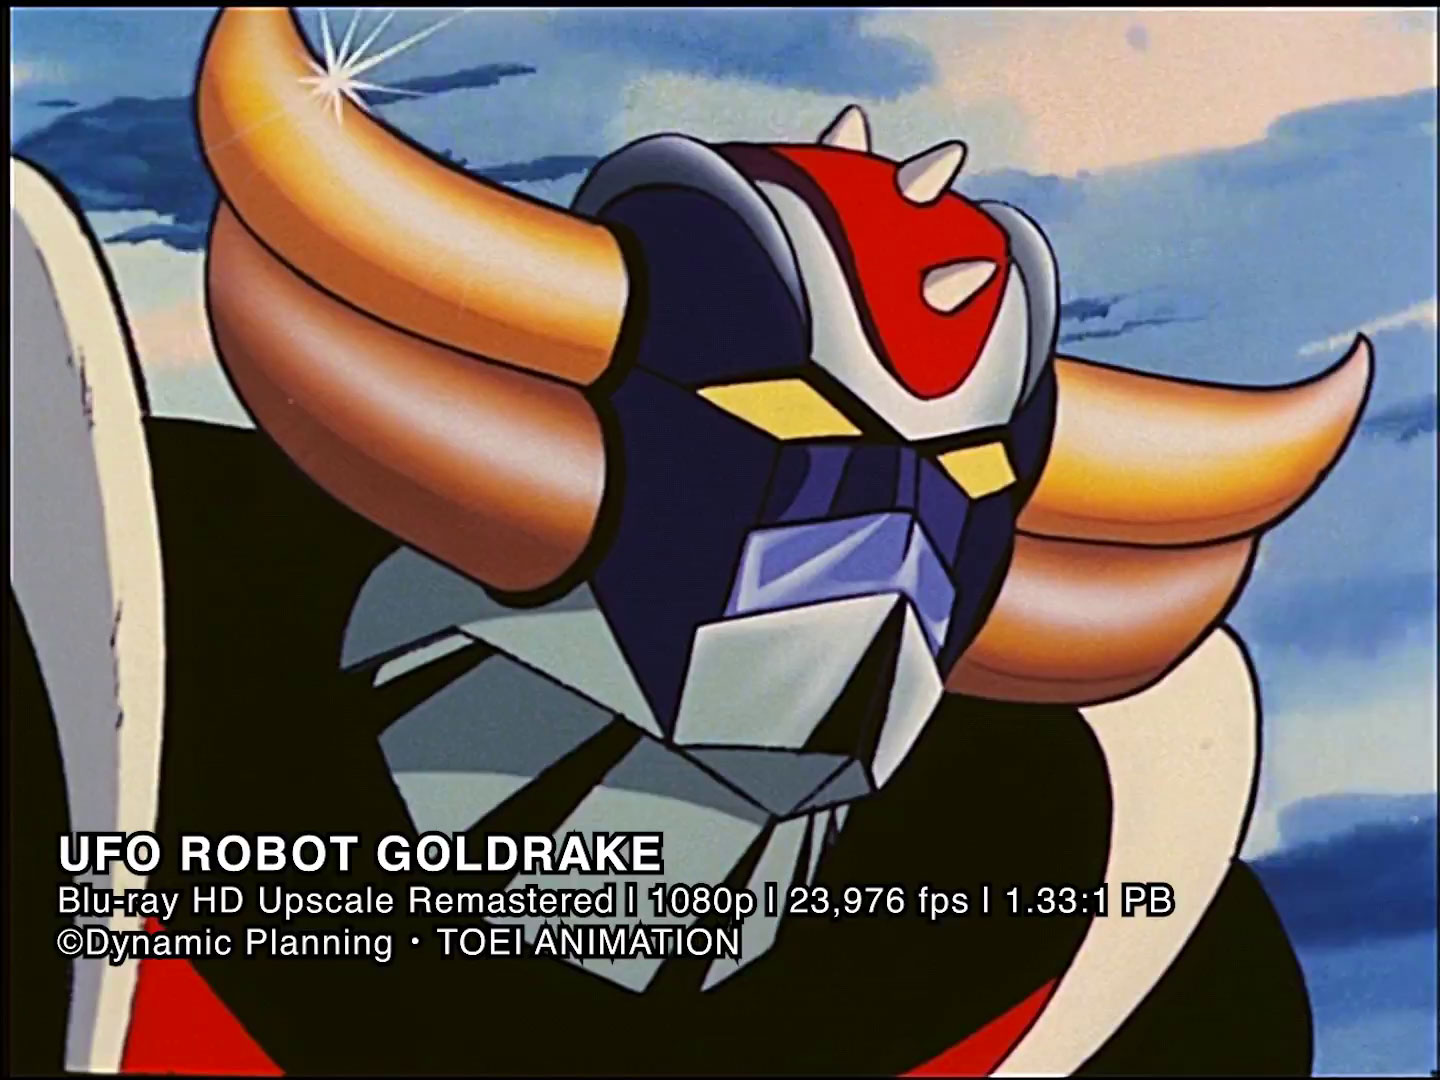 UFO Robot Goldrake in Blu-ray.